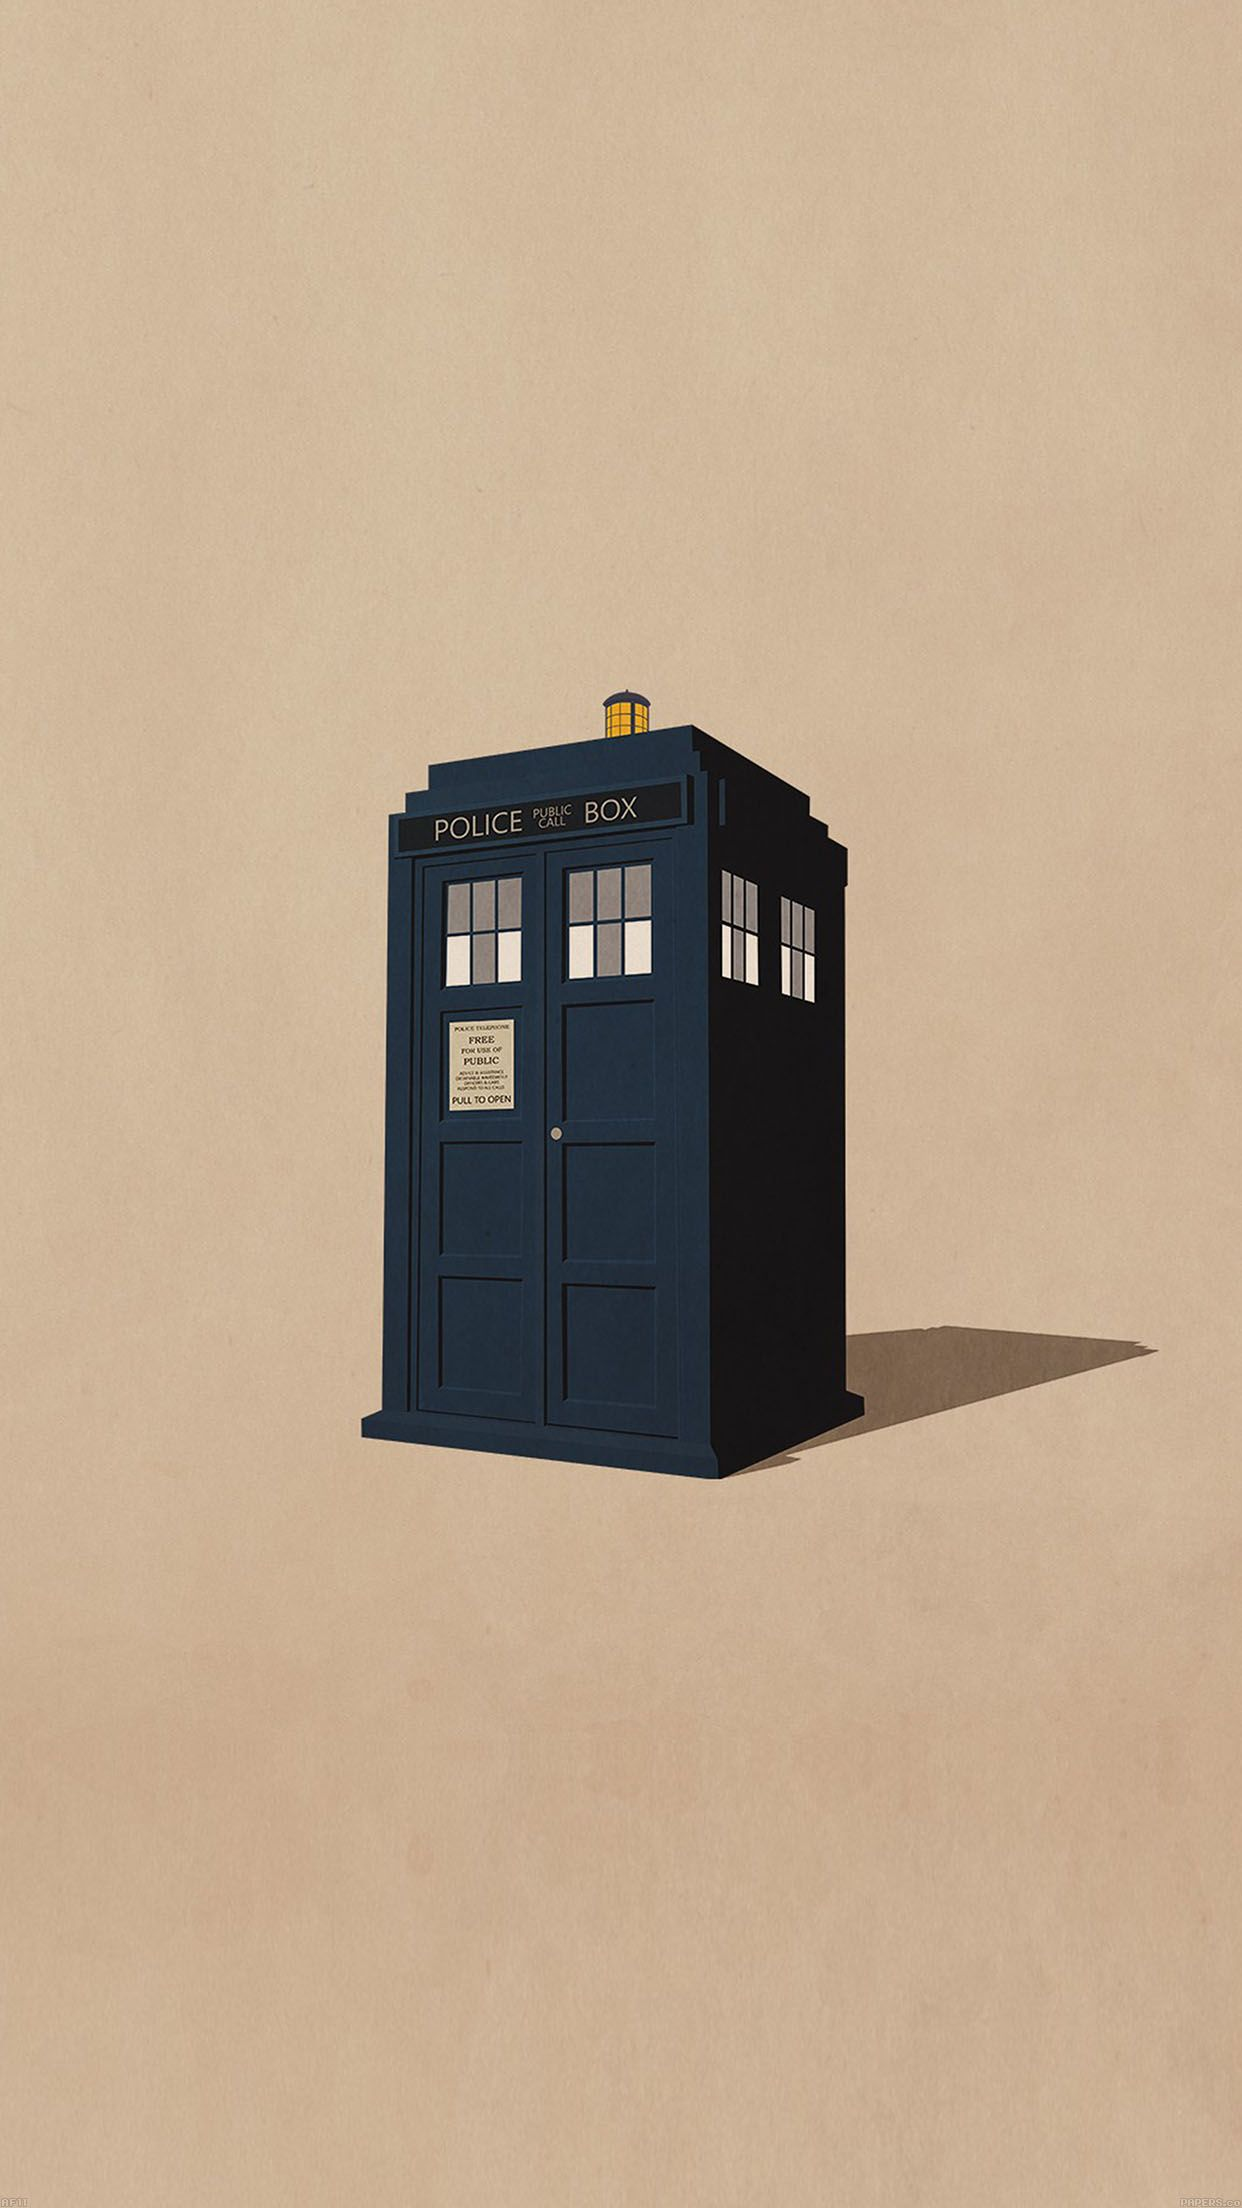 1242x2208 iPhone6papers - af11-police-box-public-illust